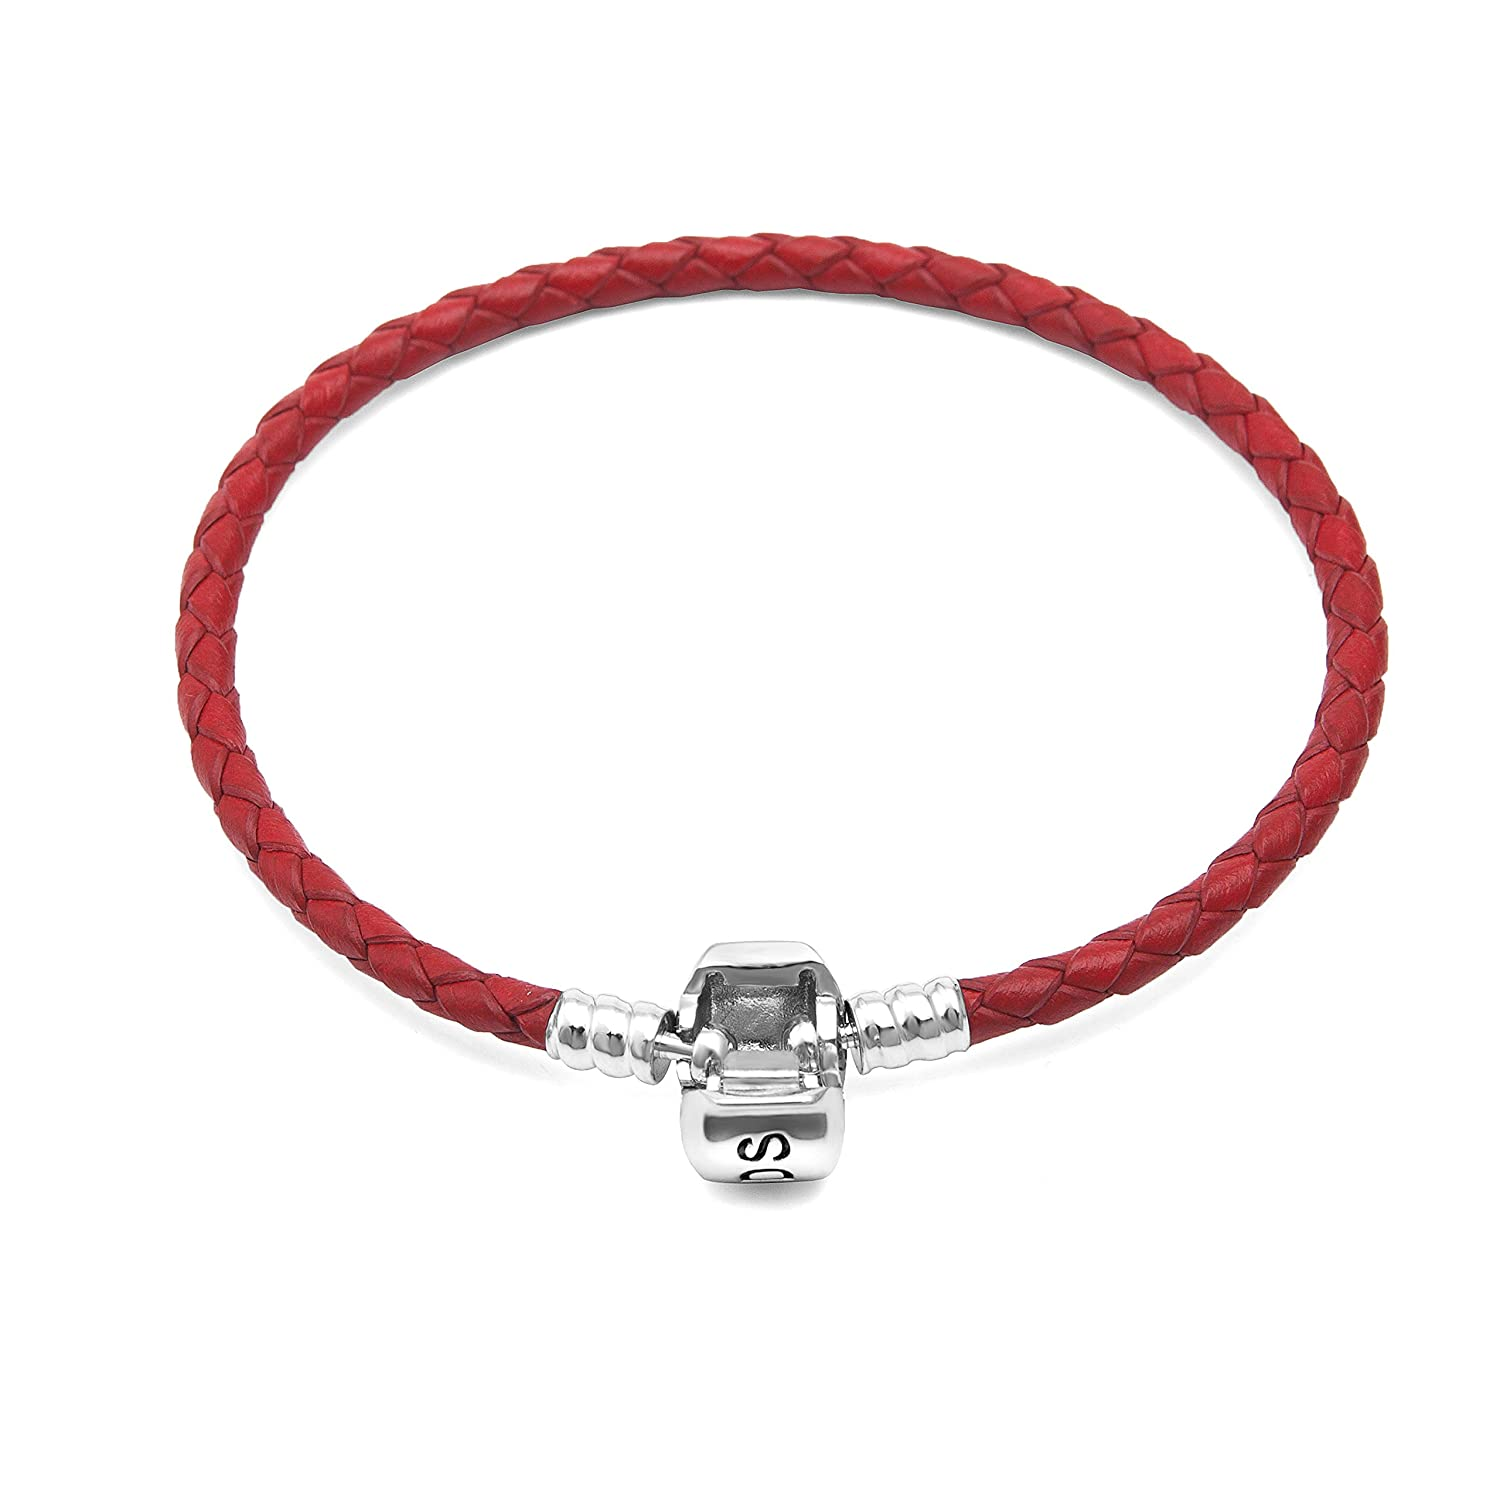 Hoobeads Genuine Red Leather Woven Bracelet with 925 Sterling Silver Barrel Snap Clasp Charms Bracelet